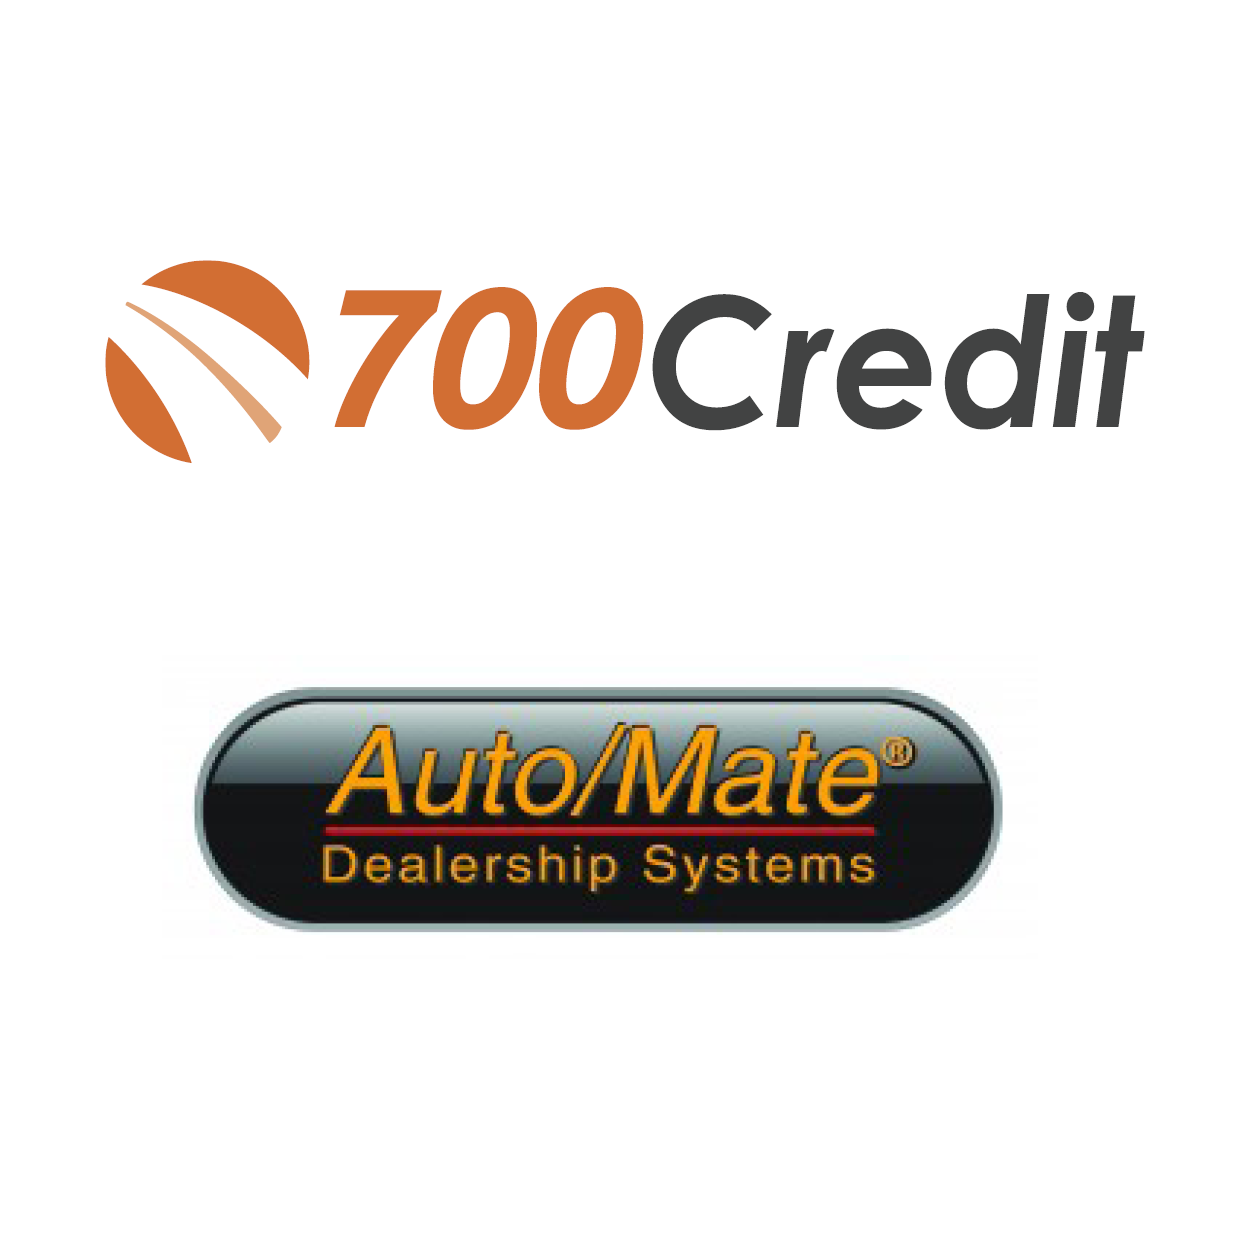 Auto Mate Announces Integration Of Dms With Quickscreen